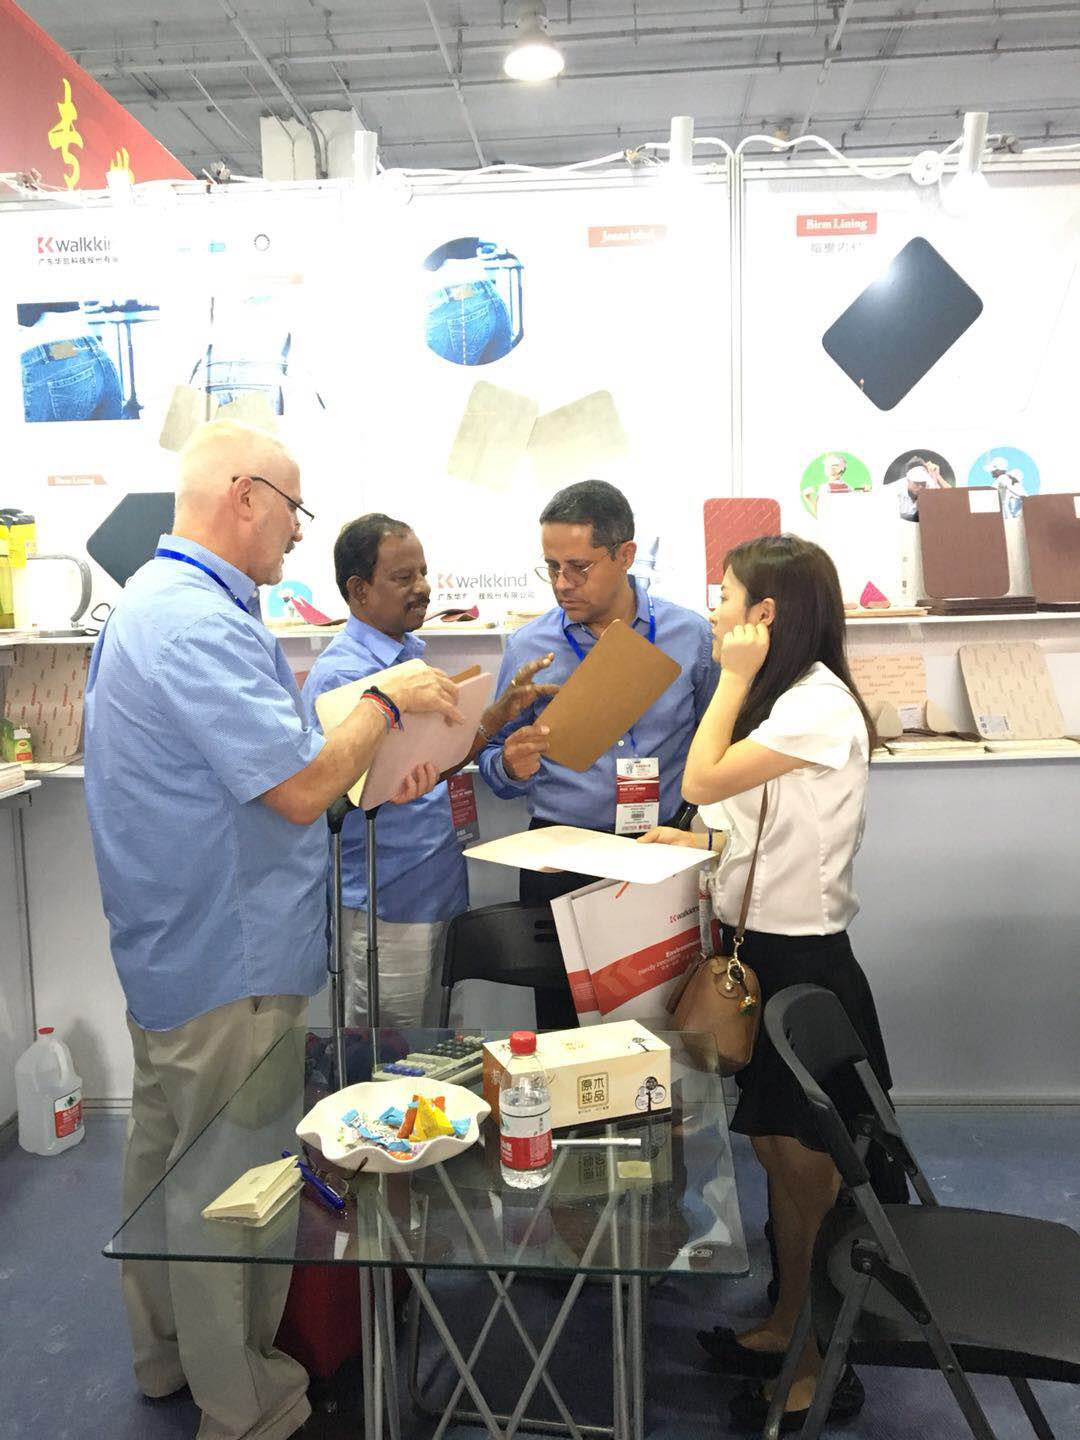 Walkkind-News About Walkkind Company Attend The 23th China (Wenzhou)International Shoe And Leather F-2